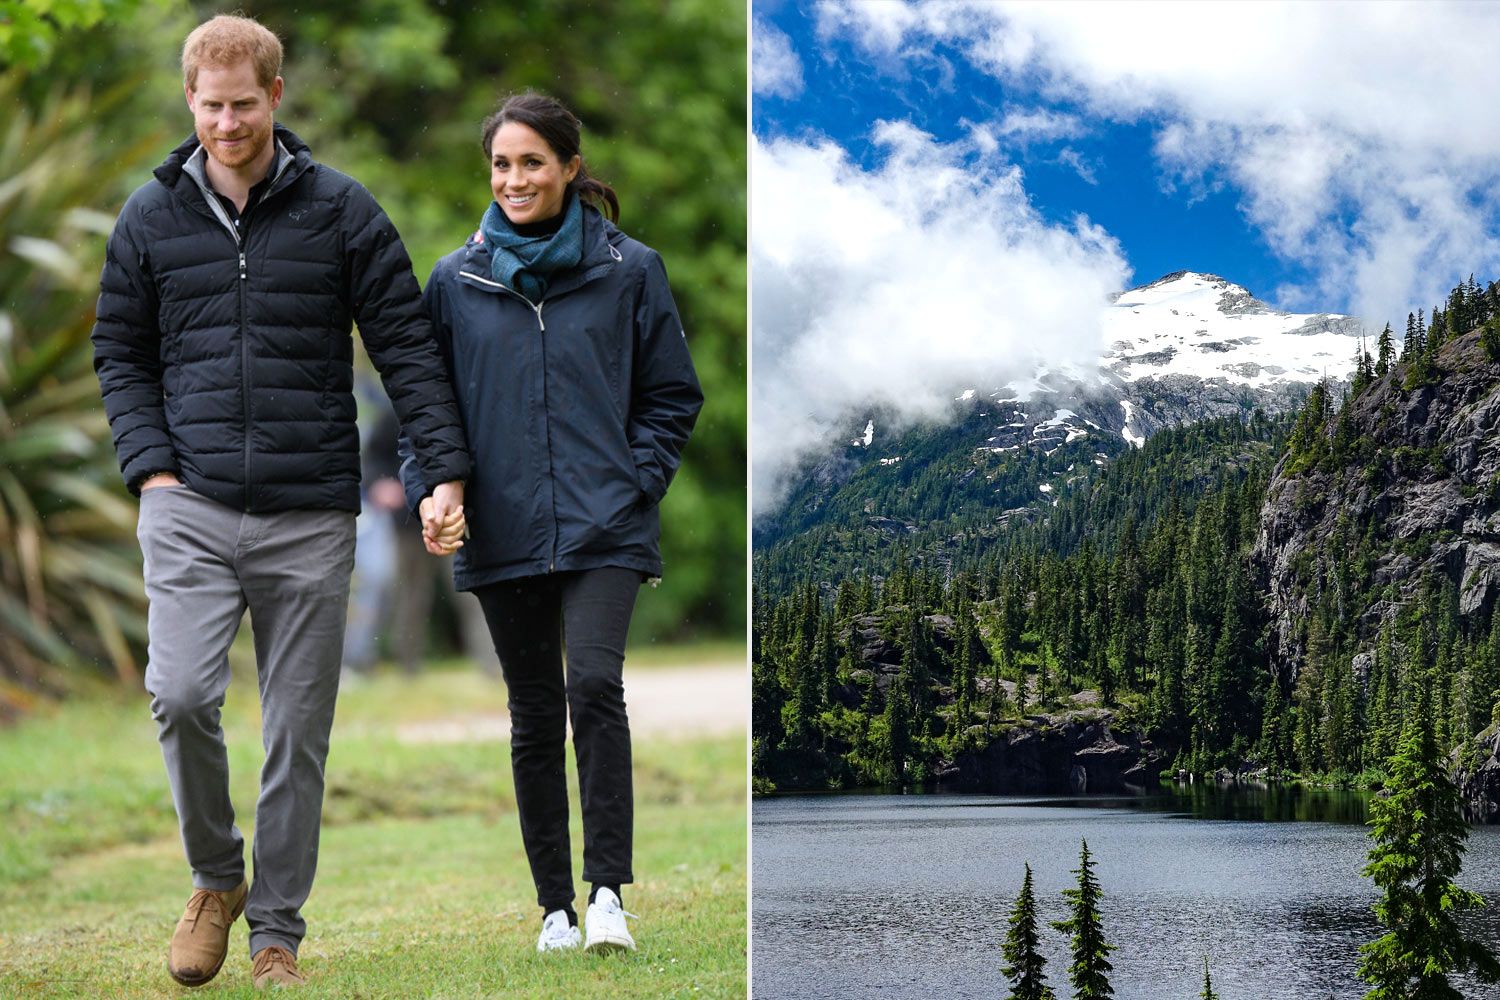 meghan markle and prince harry travel guide to vancouver island people com meghan markle and prince harry travel